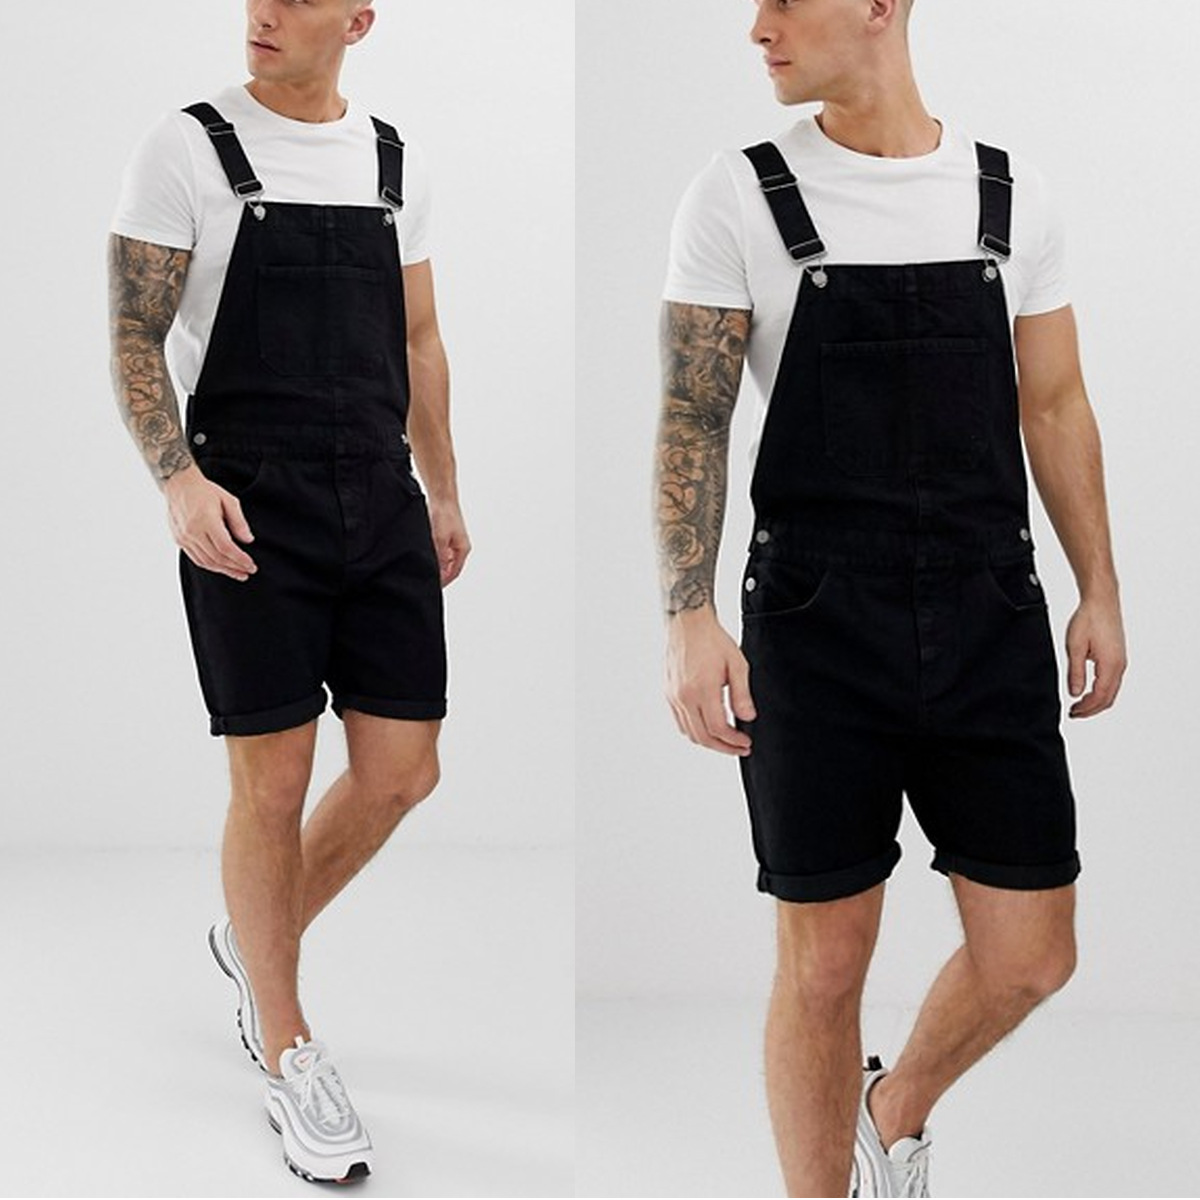 Newest Style Retro Men Cowboy Denim Short Trousers With Holes Shorts One-piece Working Bib Top Pants For Sale 2020 Men Clothes